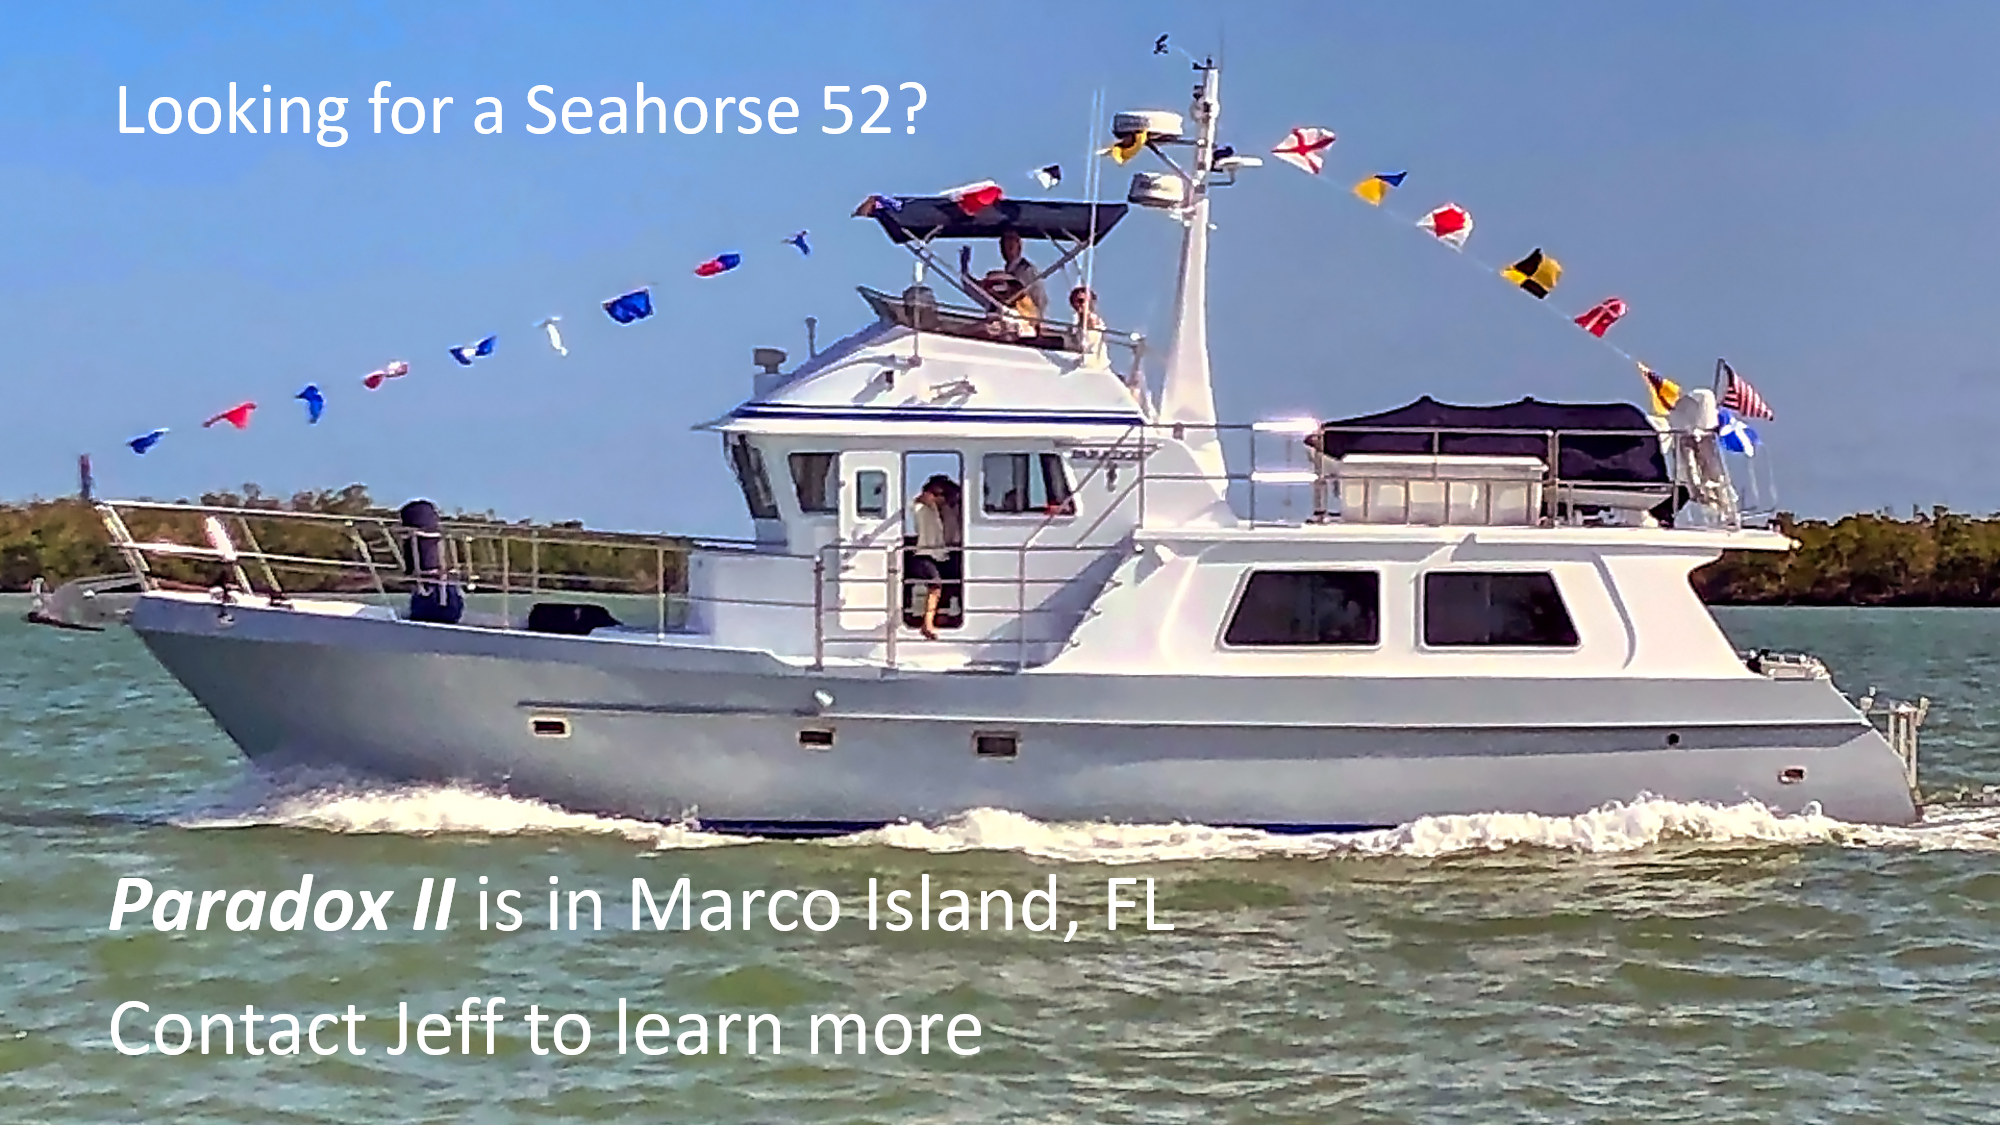 Looking for a Seahorse 52?